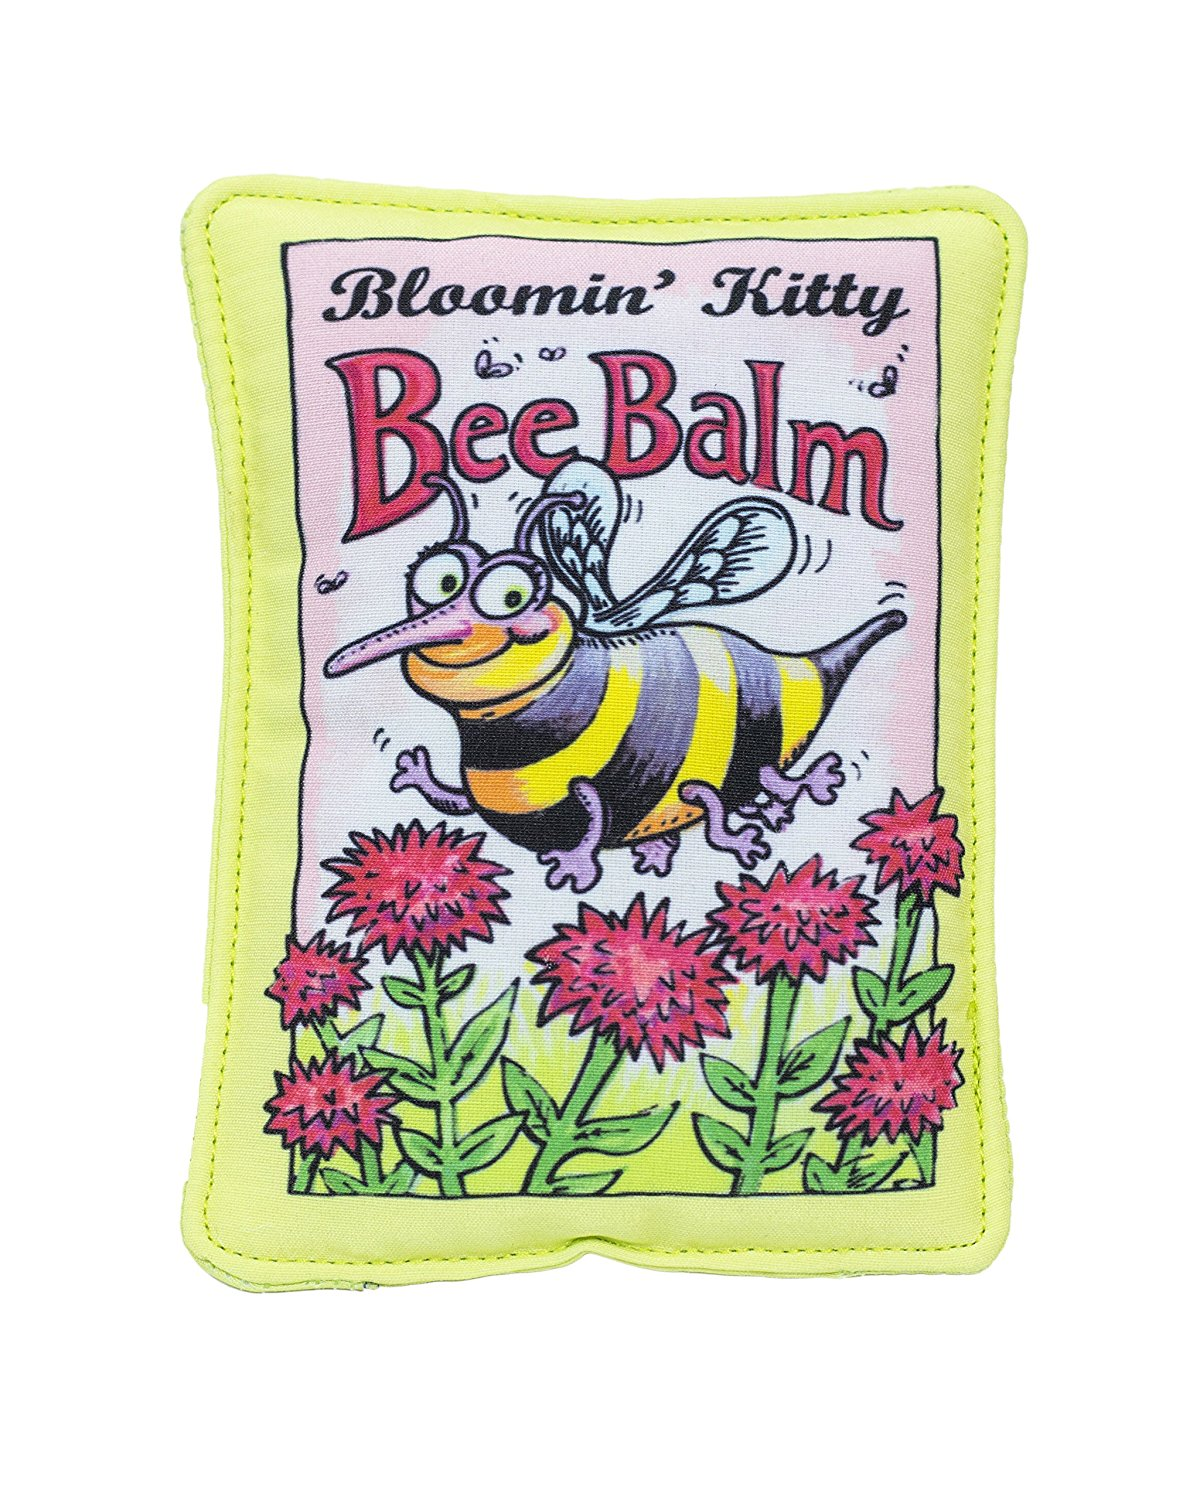 Bloomin ' Kitty Bee Balm�Seed Packet Cat Toy by Fuzzu